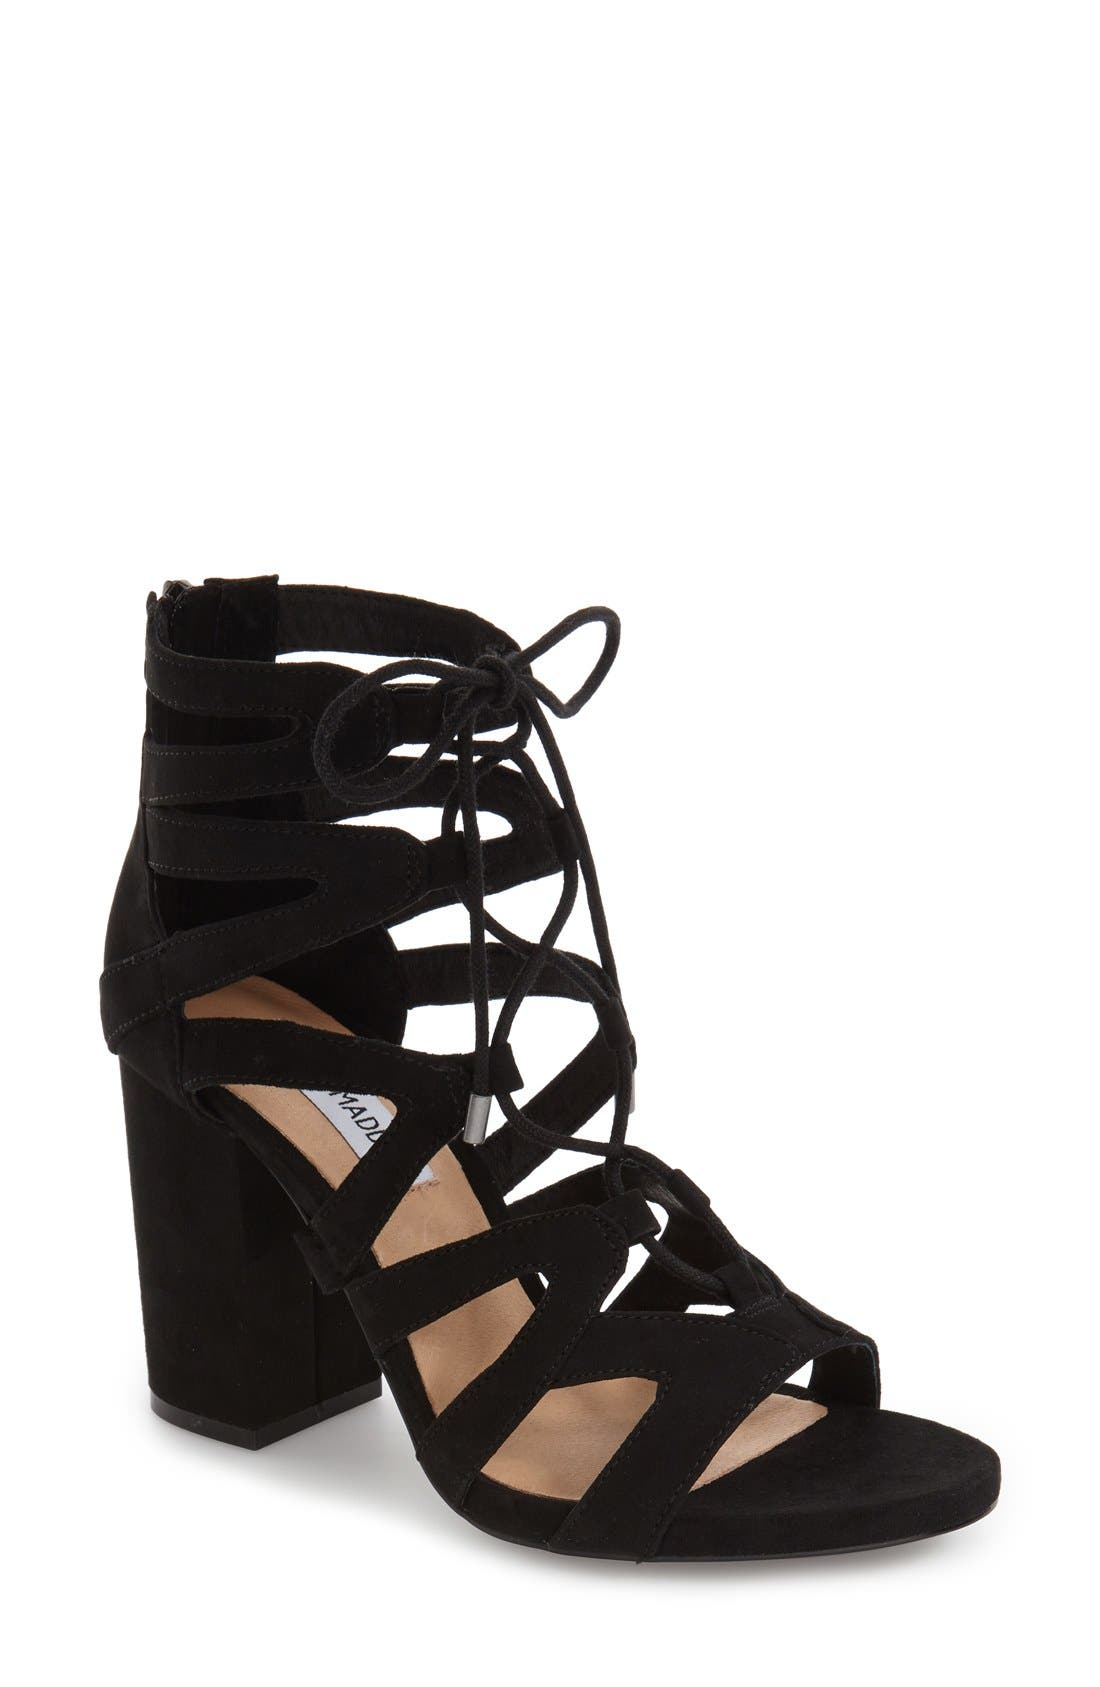 'Gal' Strappy Lace-Up Sandal, Main, color, 019